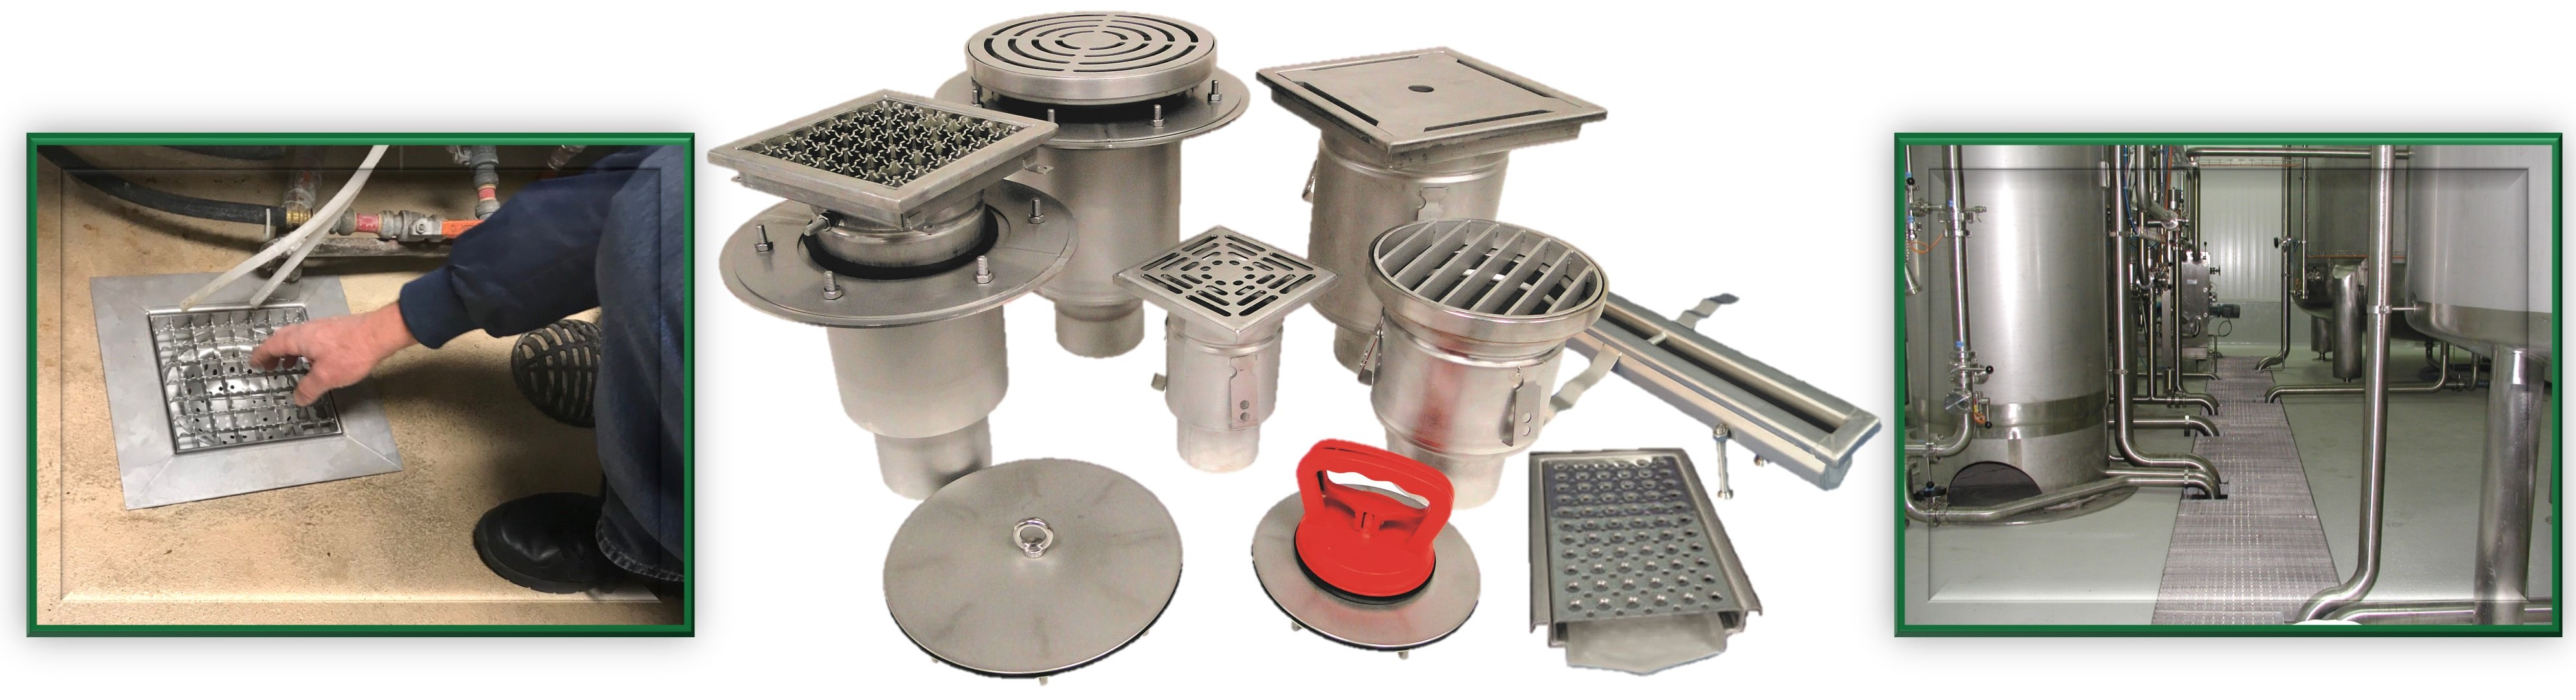 Stainless Steel Drains